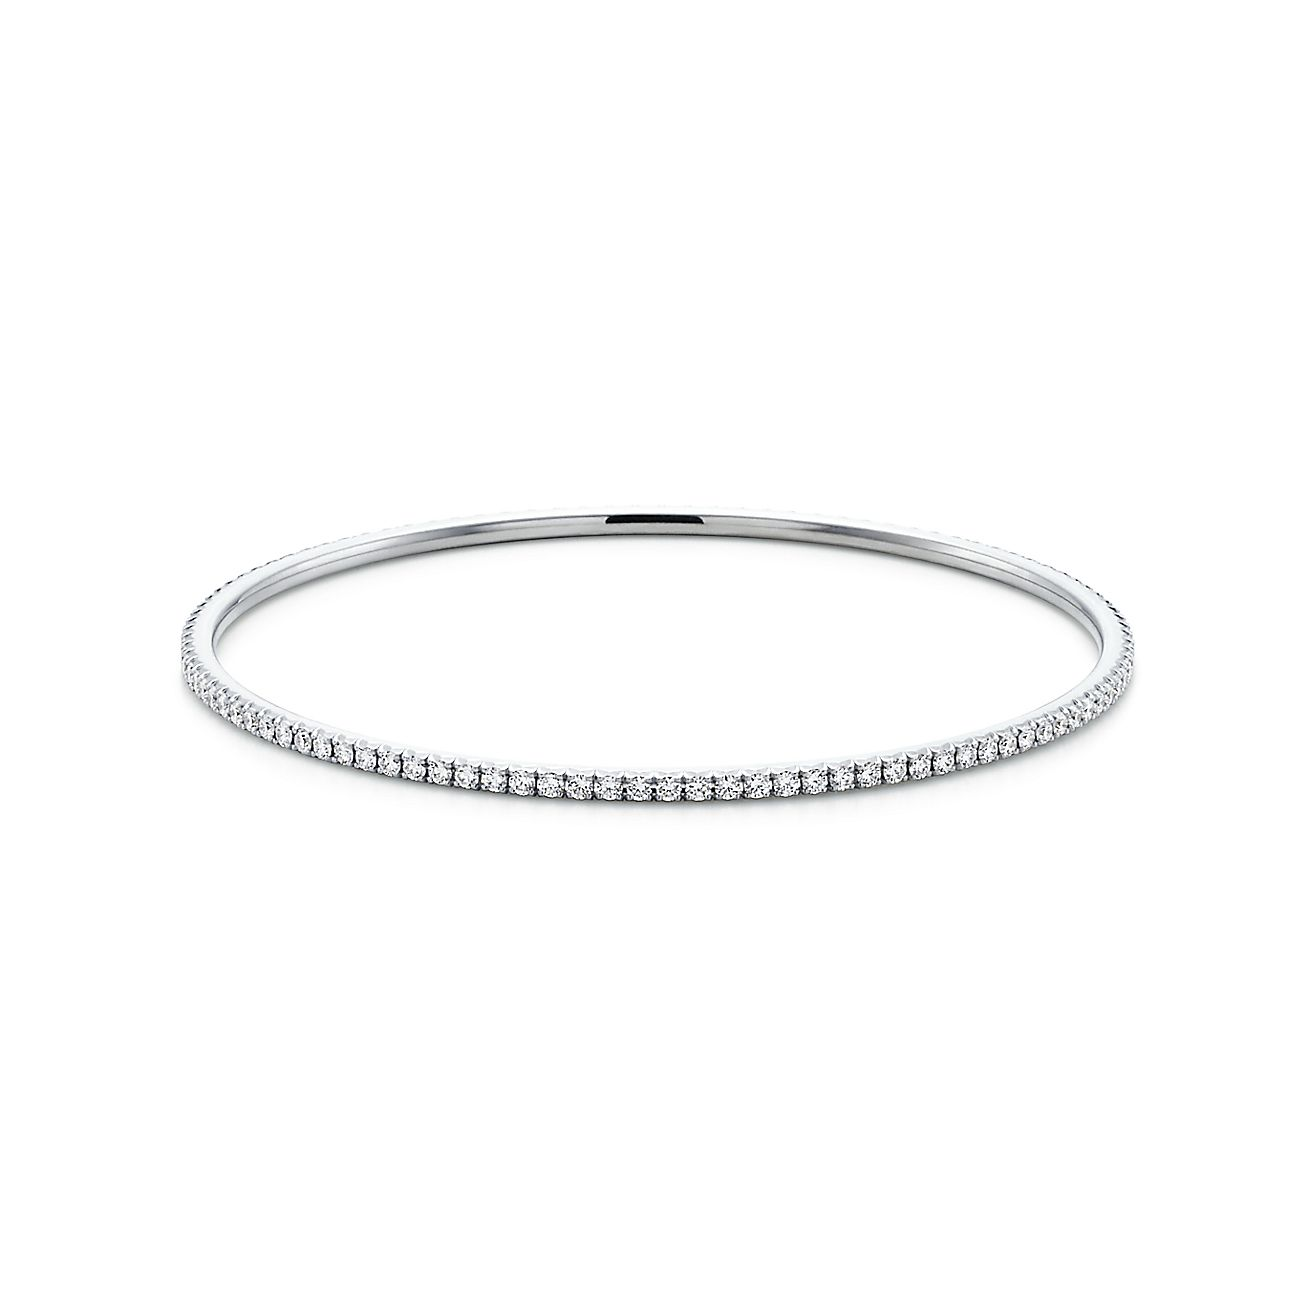 Tiffany Metro:Bangle